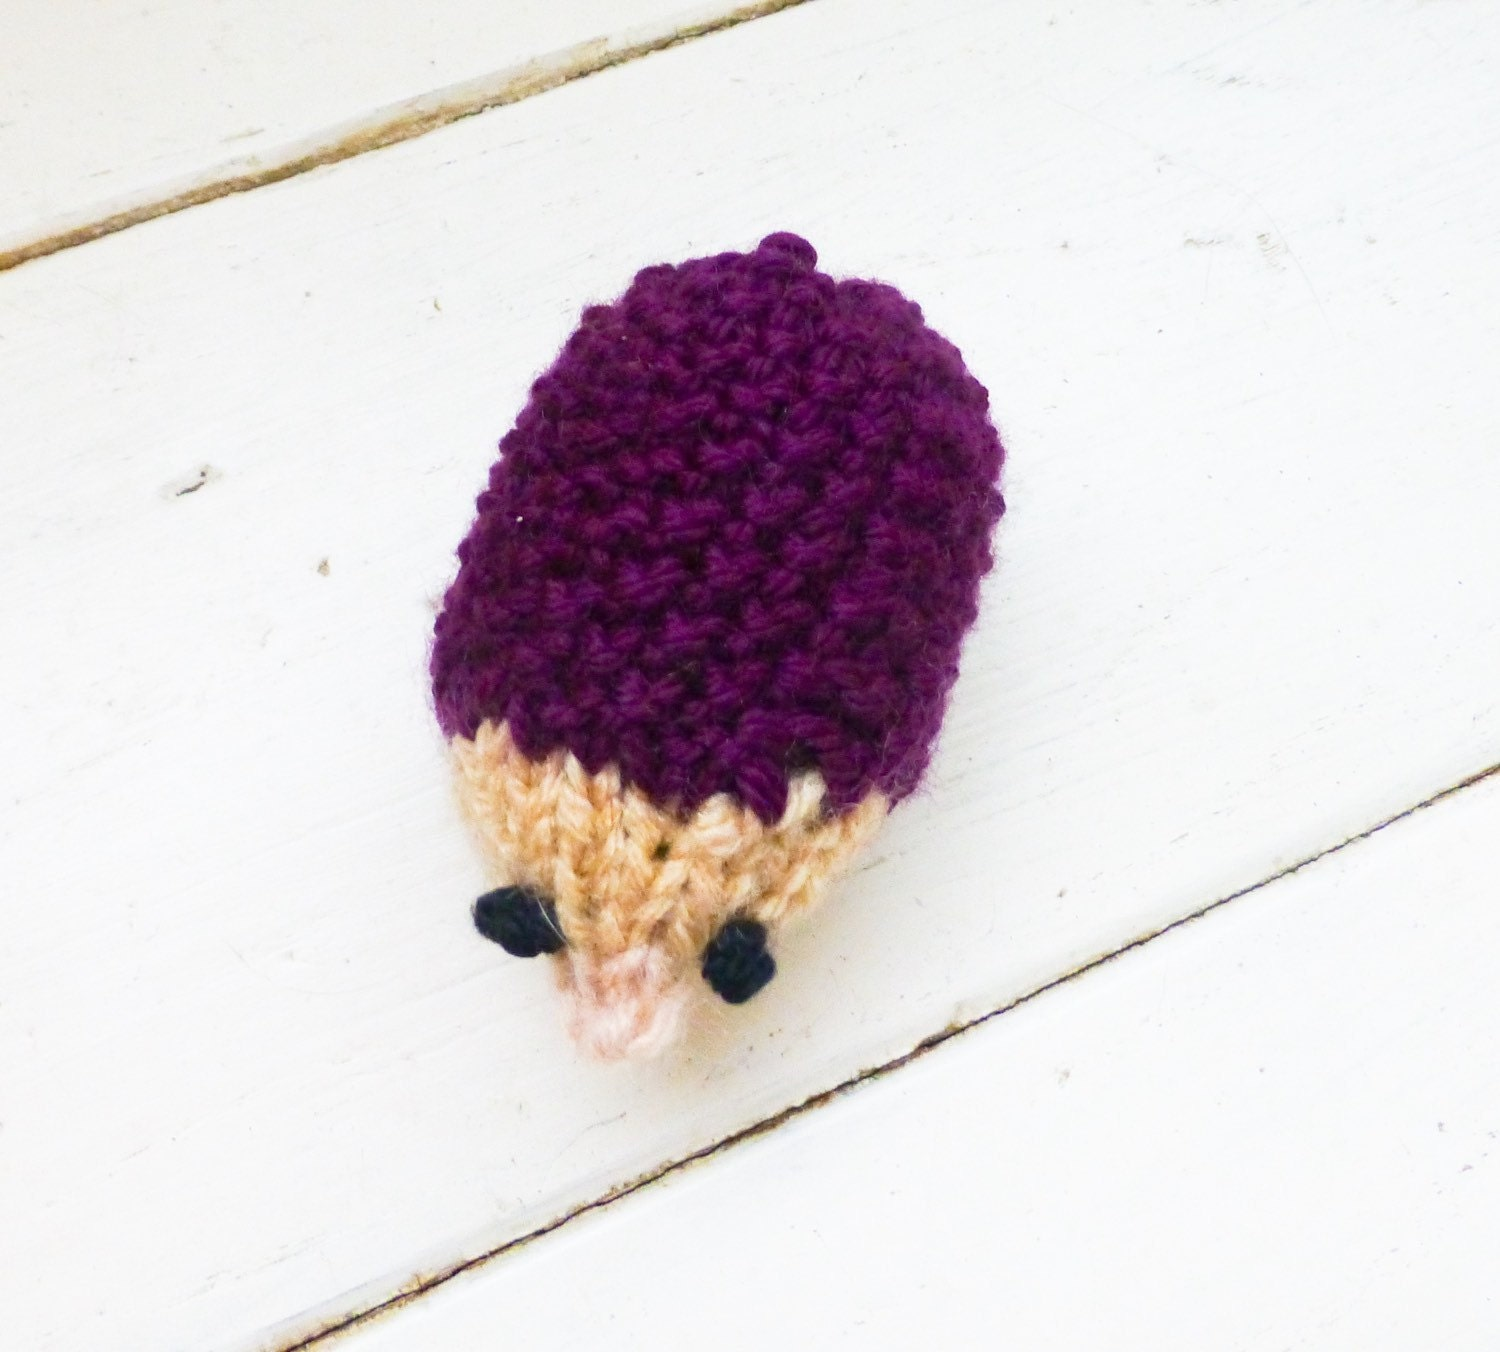 Stuffed Hedgehog Knitting Pattern : Hedgehog stuffed animal knit hedgehog amigurumi animal mini